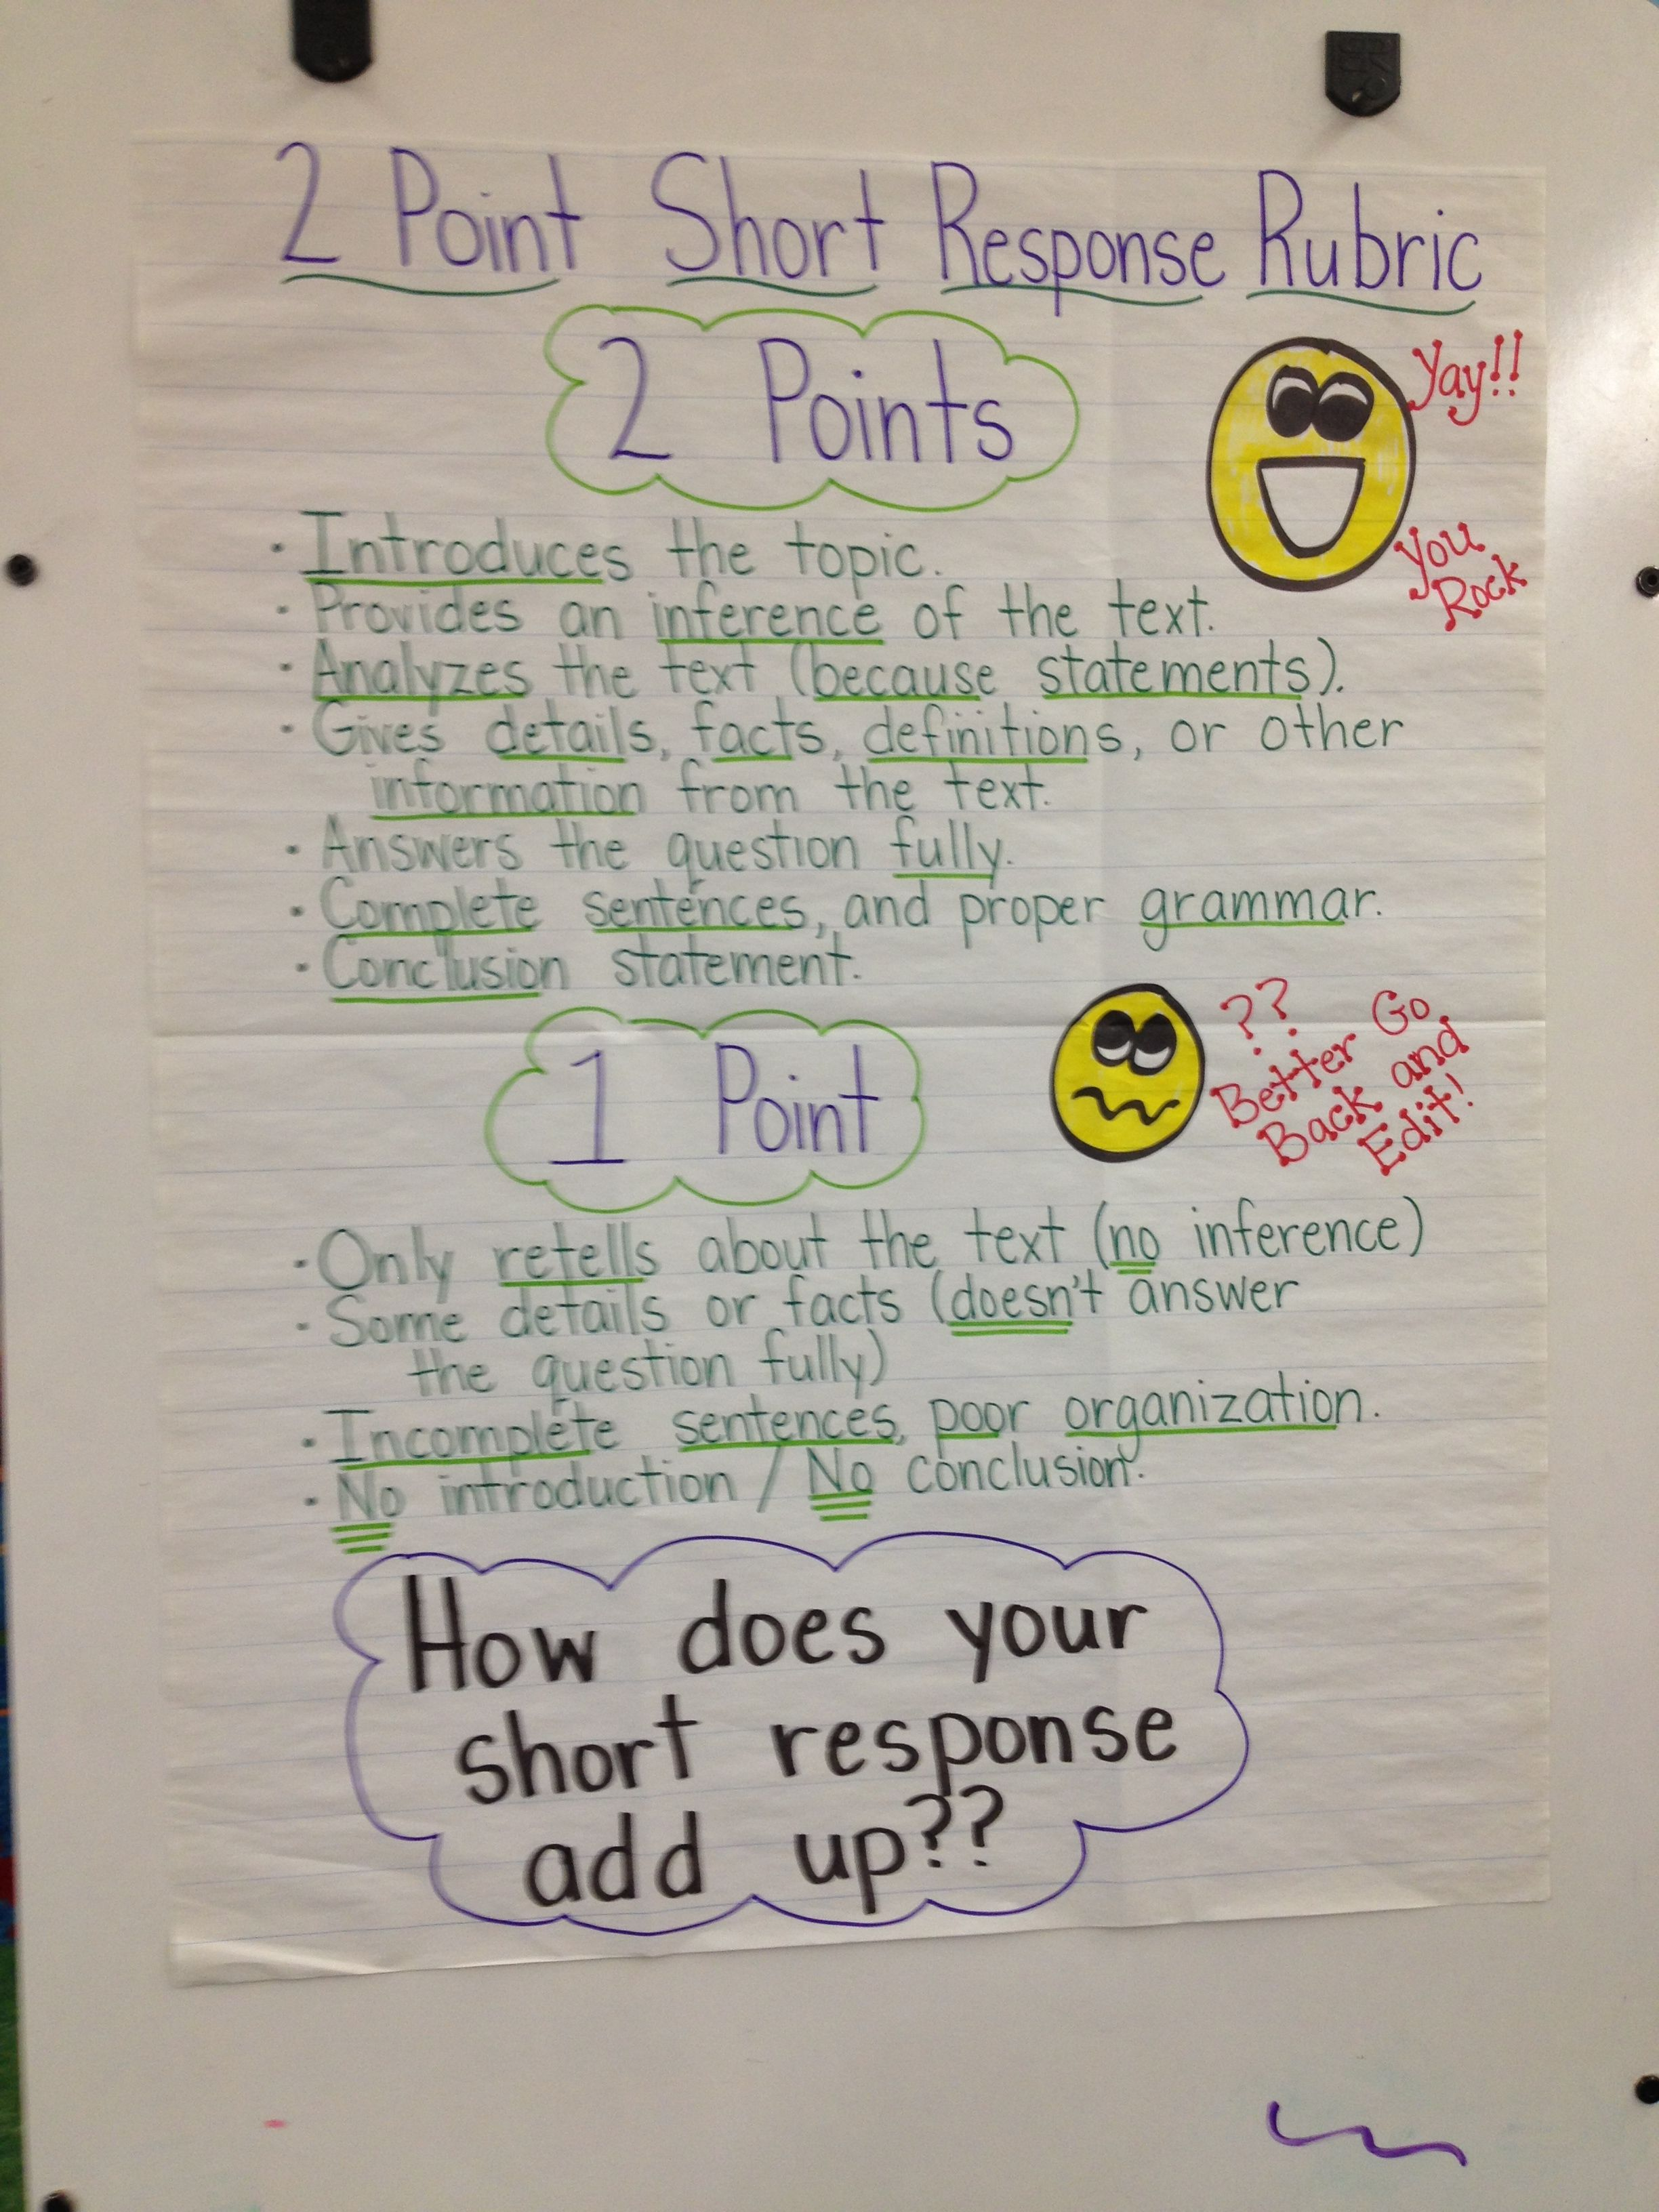 Nys Short Response 2 Point Rubric